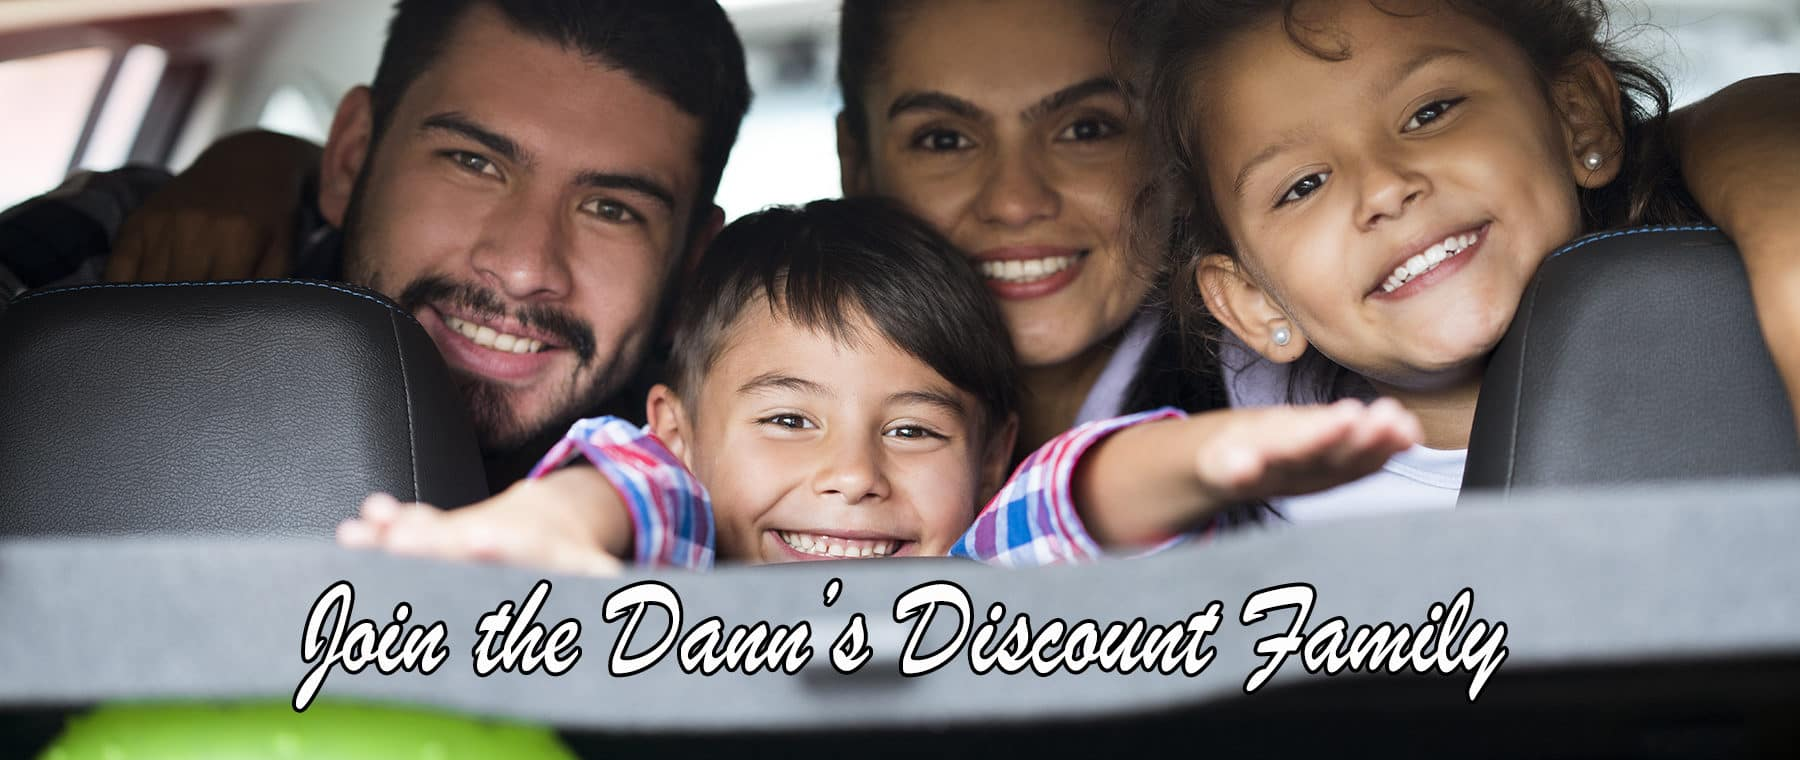 Join the Dann's Discount Family